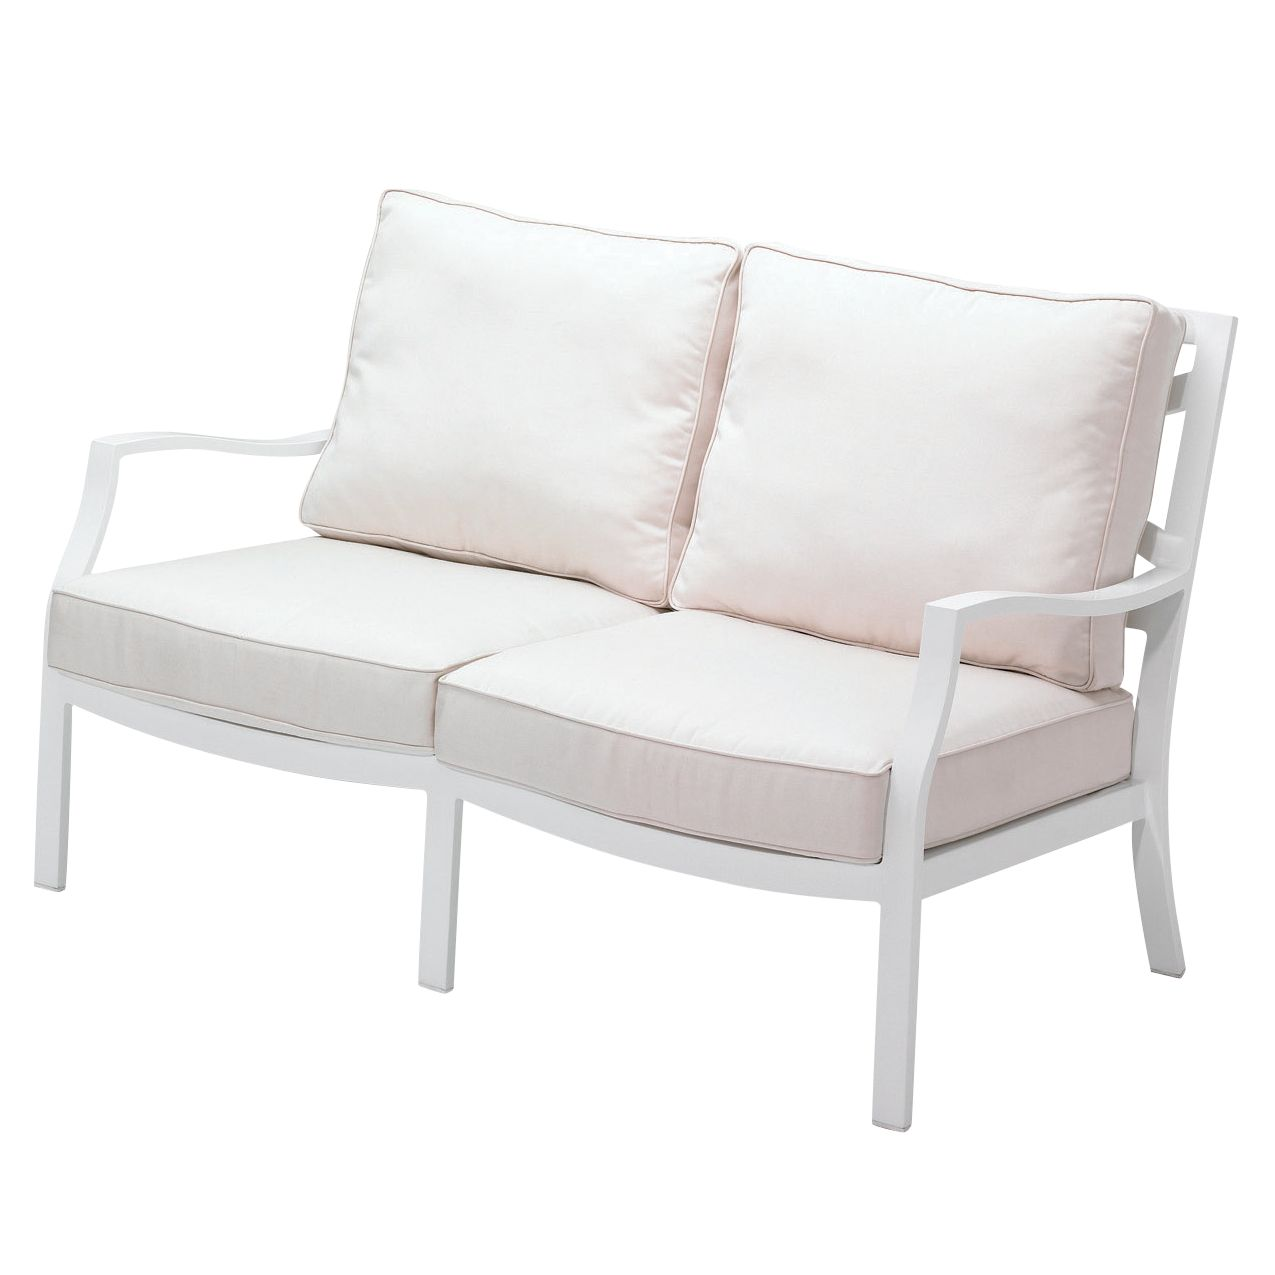 Gloster Roma Deep Seating 2 Seat Outdoor Sofa